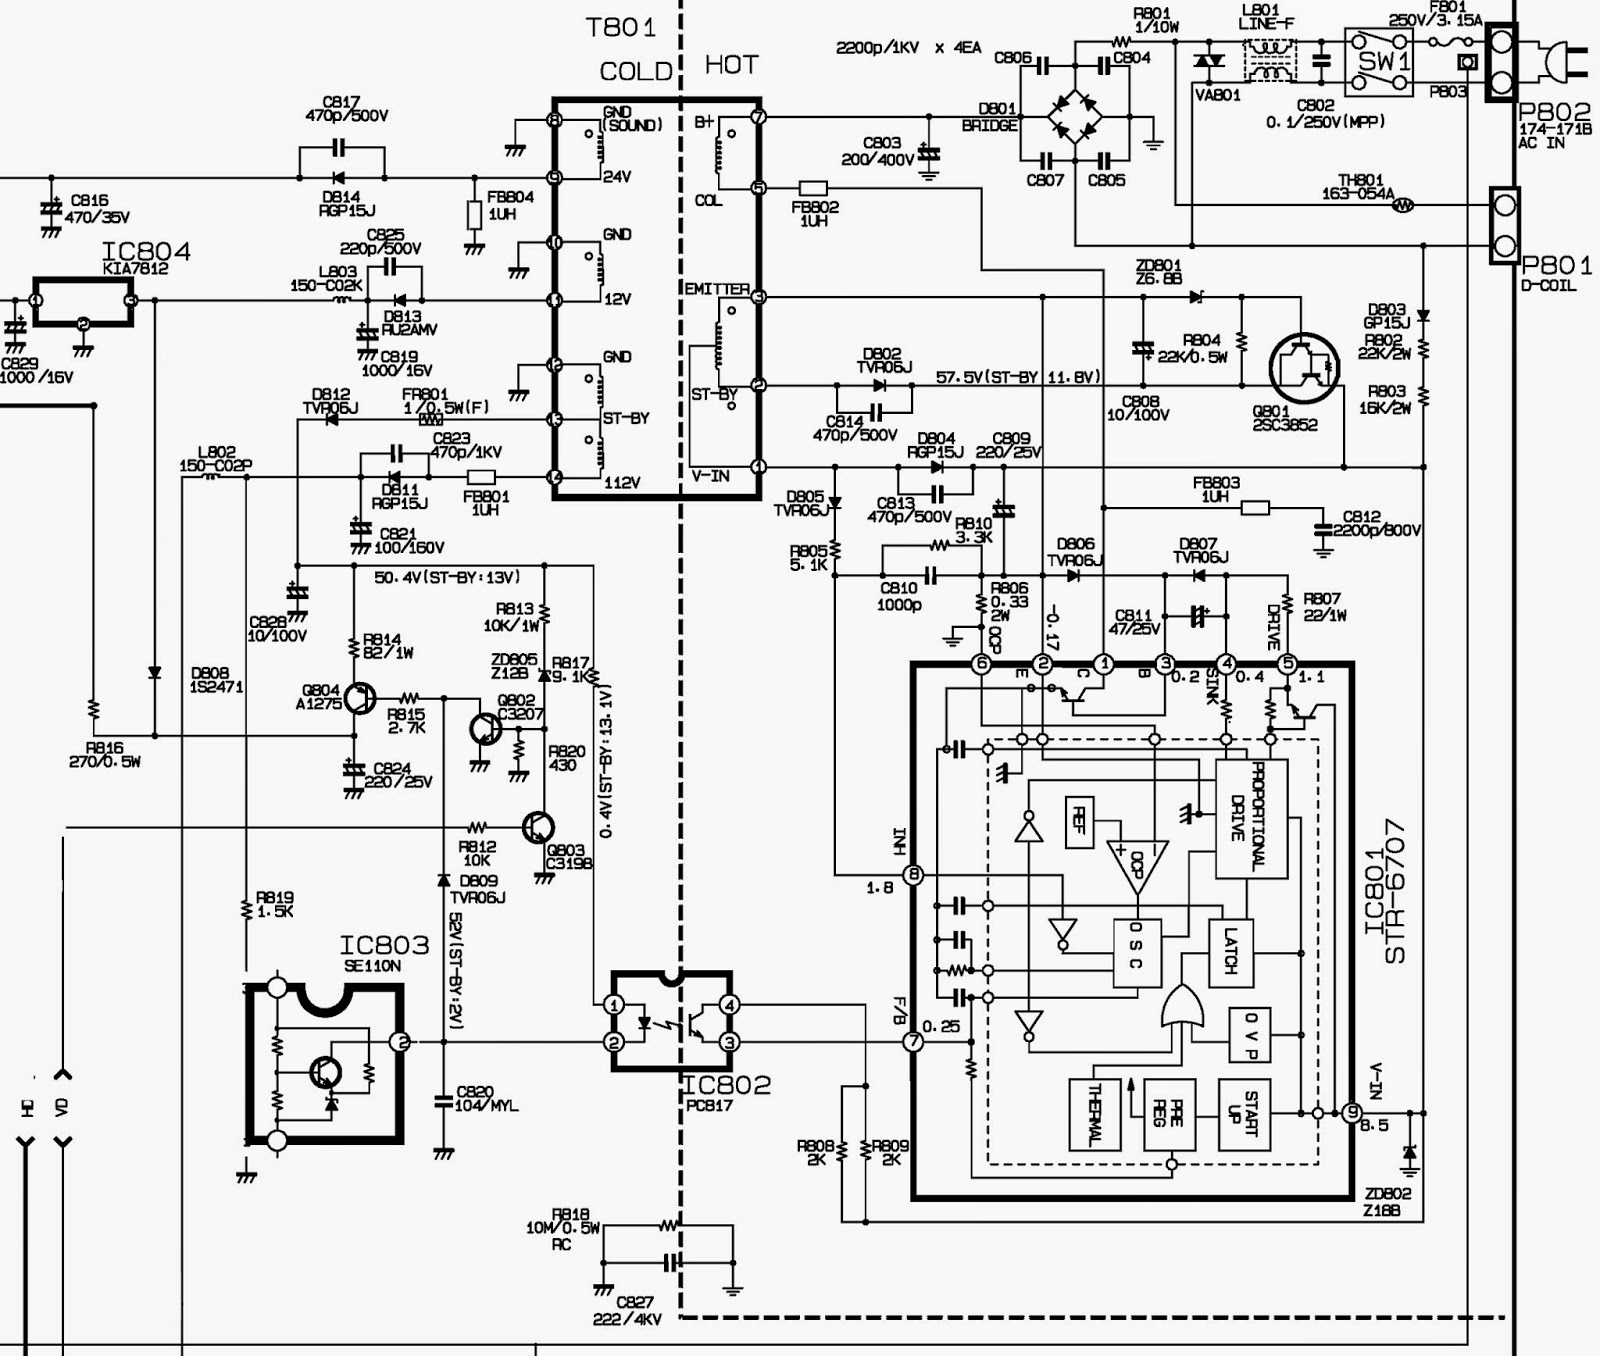 Watson W 25am Circuit Diagram | Wiring Diagram on hvac diagrams, air conditioner diagrams, plumbing diagrams, electrical ladder diagrams, electrical math formulas, electrical schematics, electrical power diagrams, electrical symbols, electrical diagrams for houses, electrical outlet, kawasaki electrical diagrams, electrical conduit, electrical landscaping lights, electrical blueprints, electrical floor plans, electrical panels diagrams, landscaping diagrams, electrical building diagrams, engine diagrams, wire diagrams,